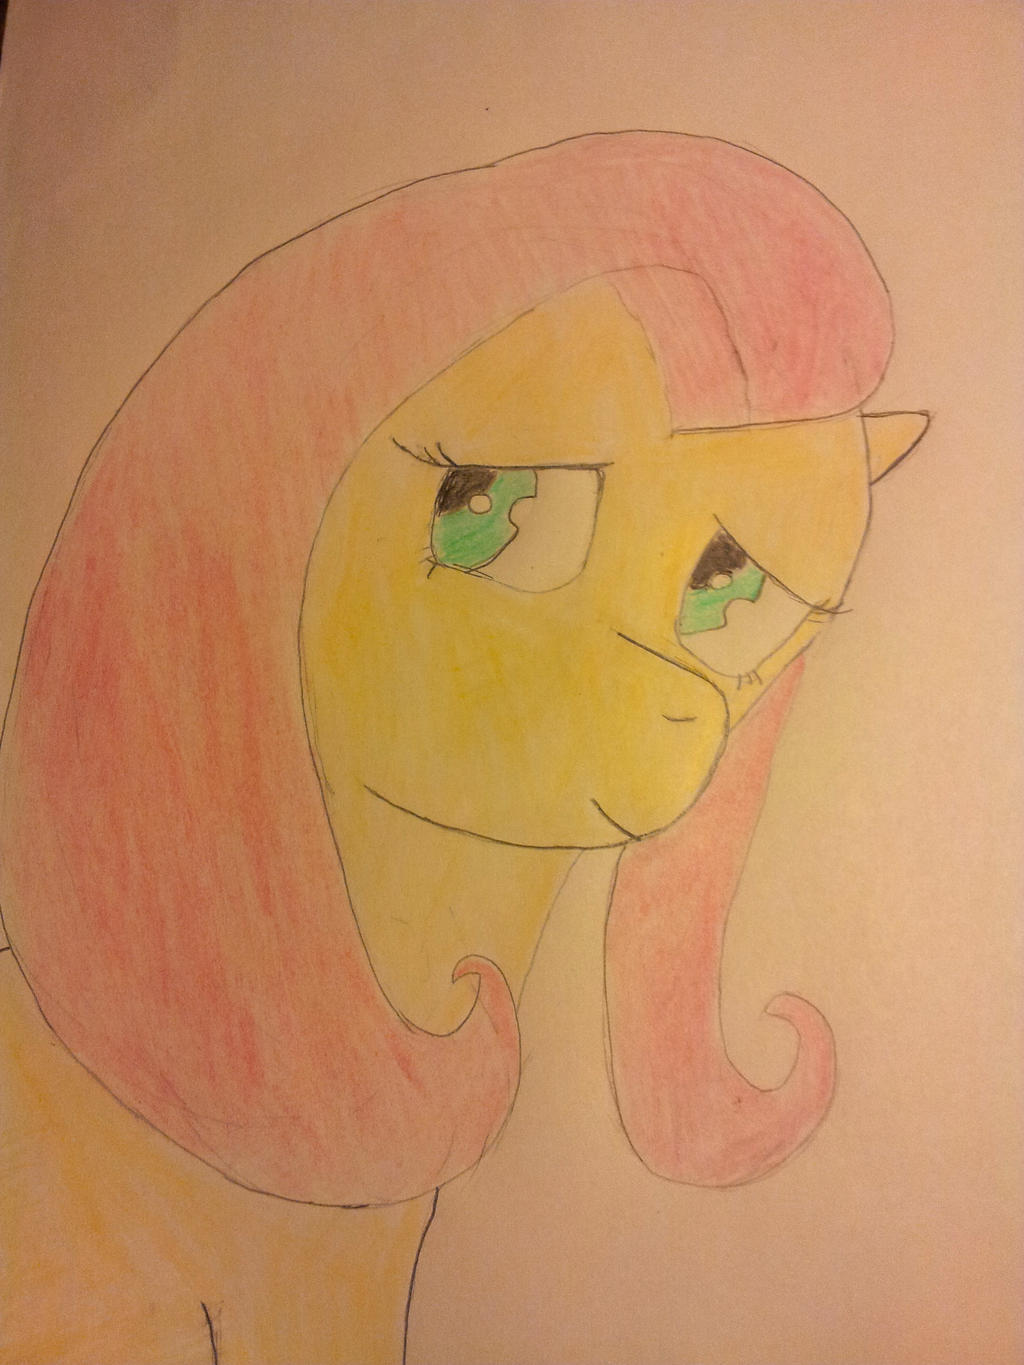 Flutters by alviniscute